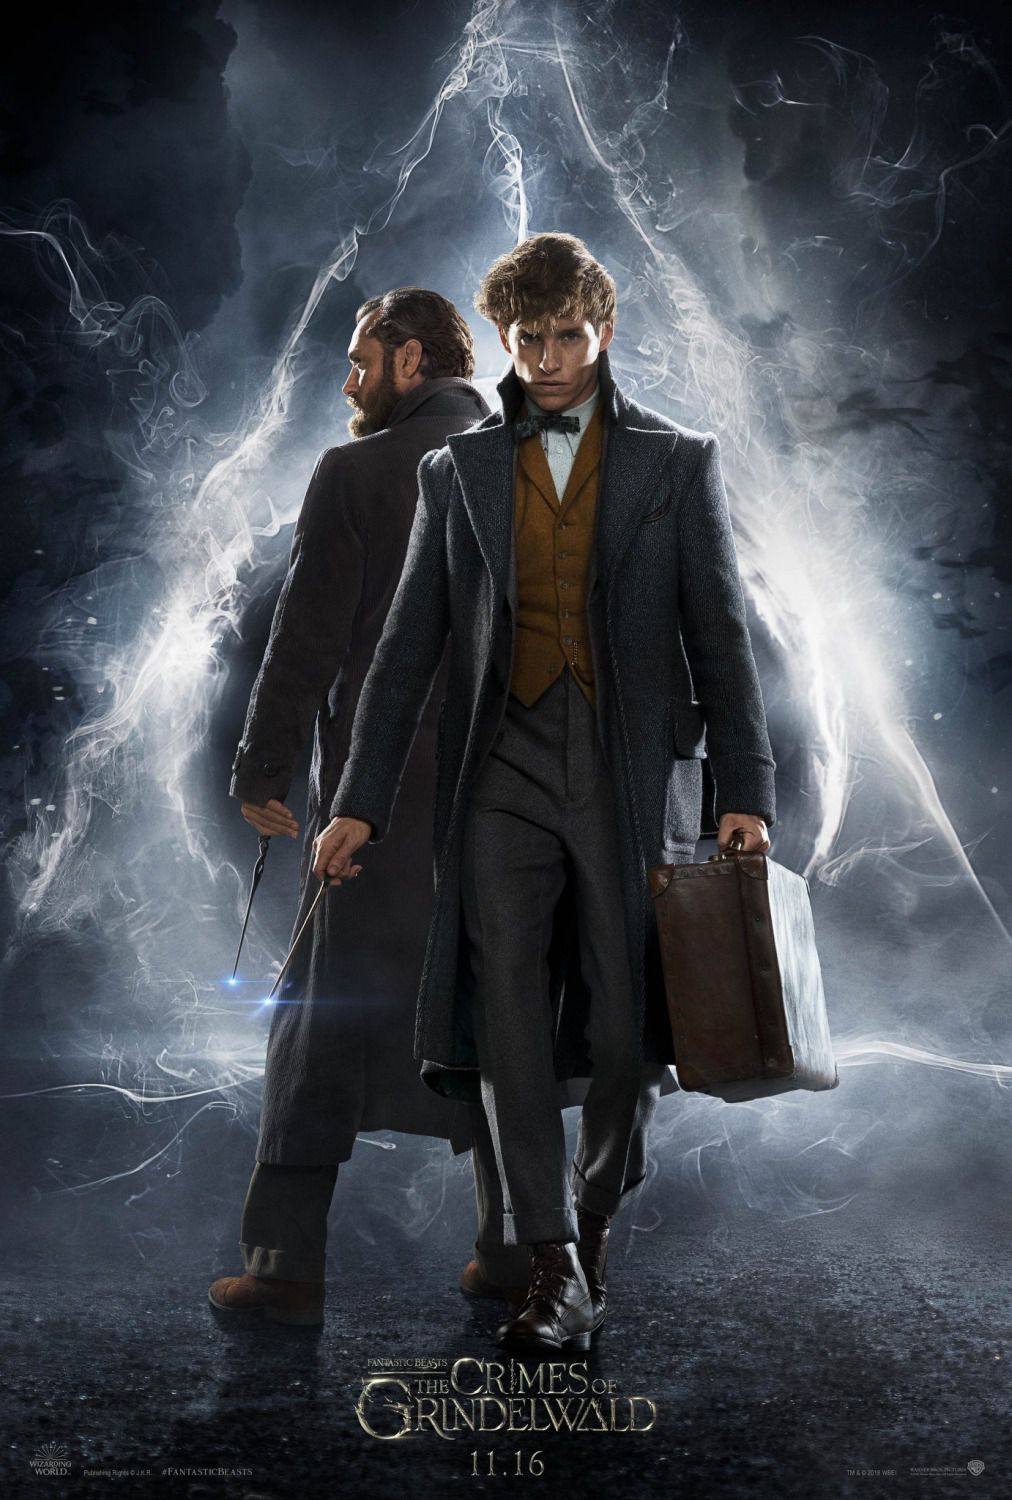 Fantastic Beasts the Crimes of Grindelwald - fantasy film poster 2018